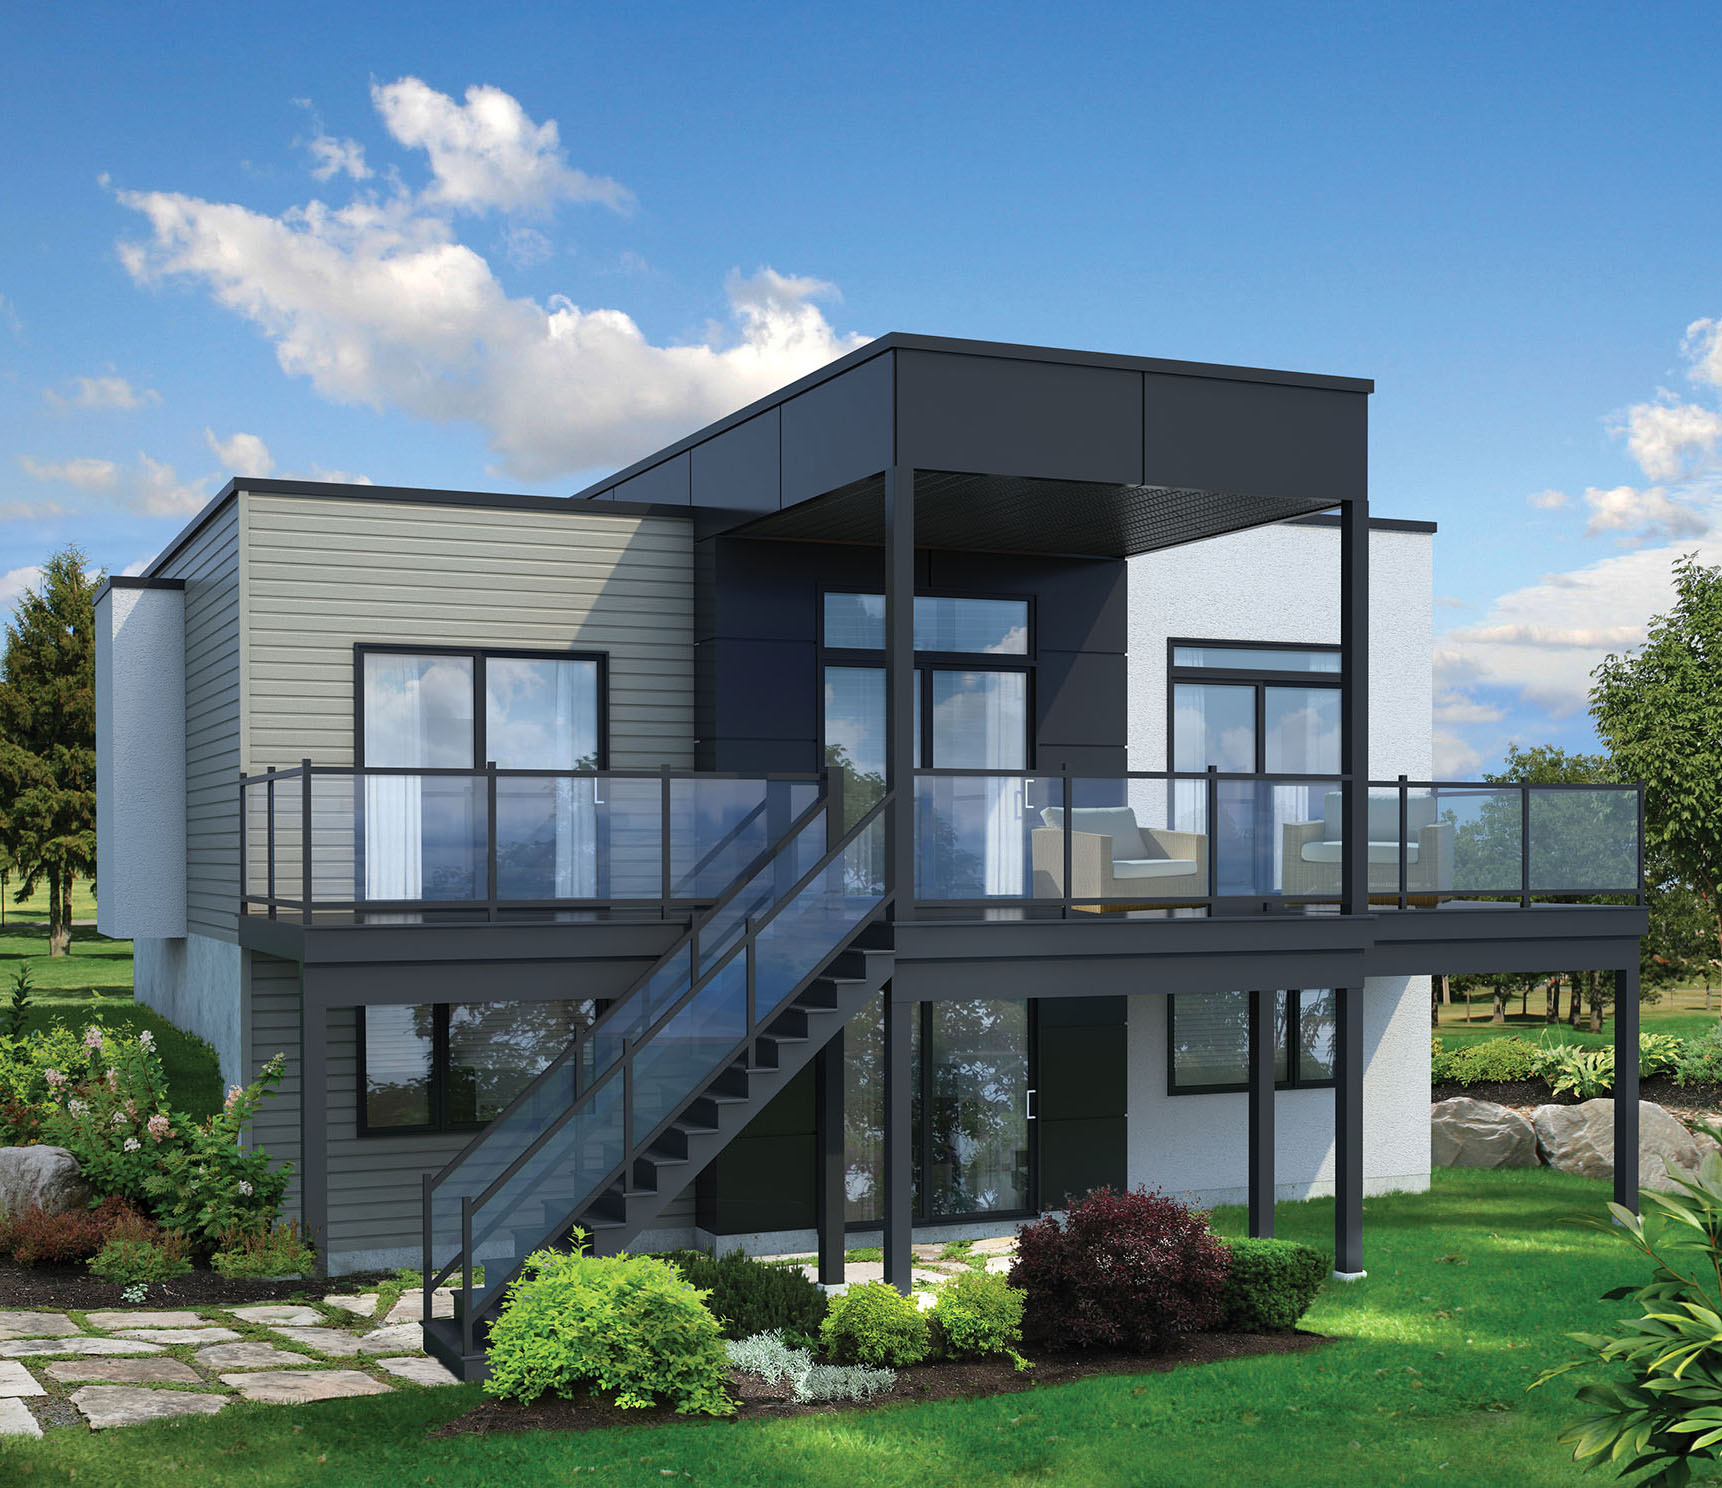 2 bed modern house plan for sloping lot 80780pm for Sloped lot house plans